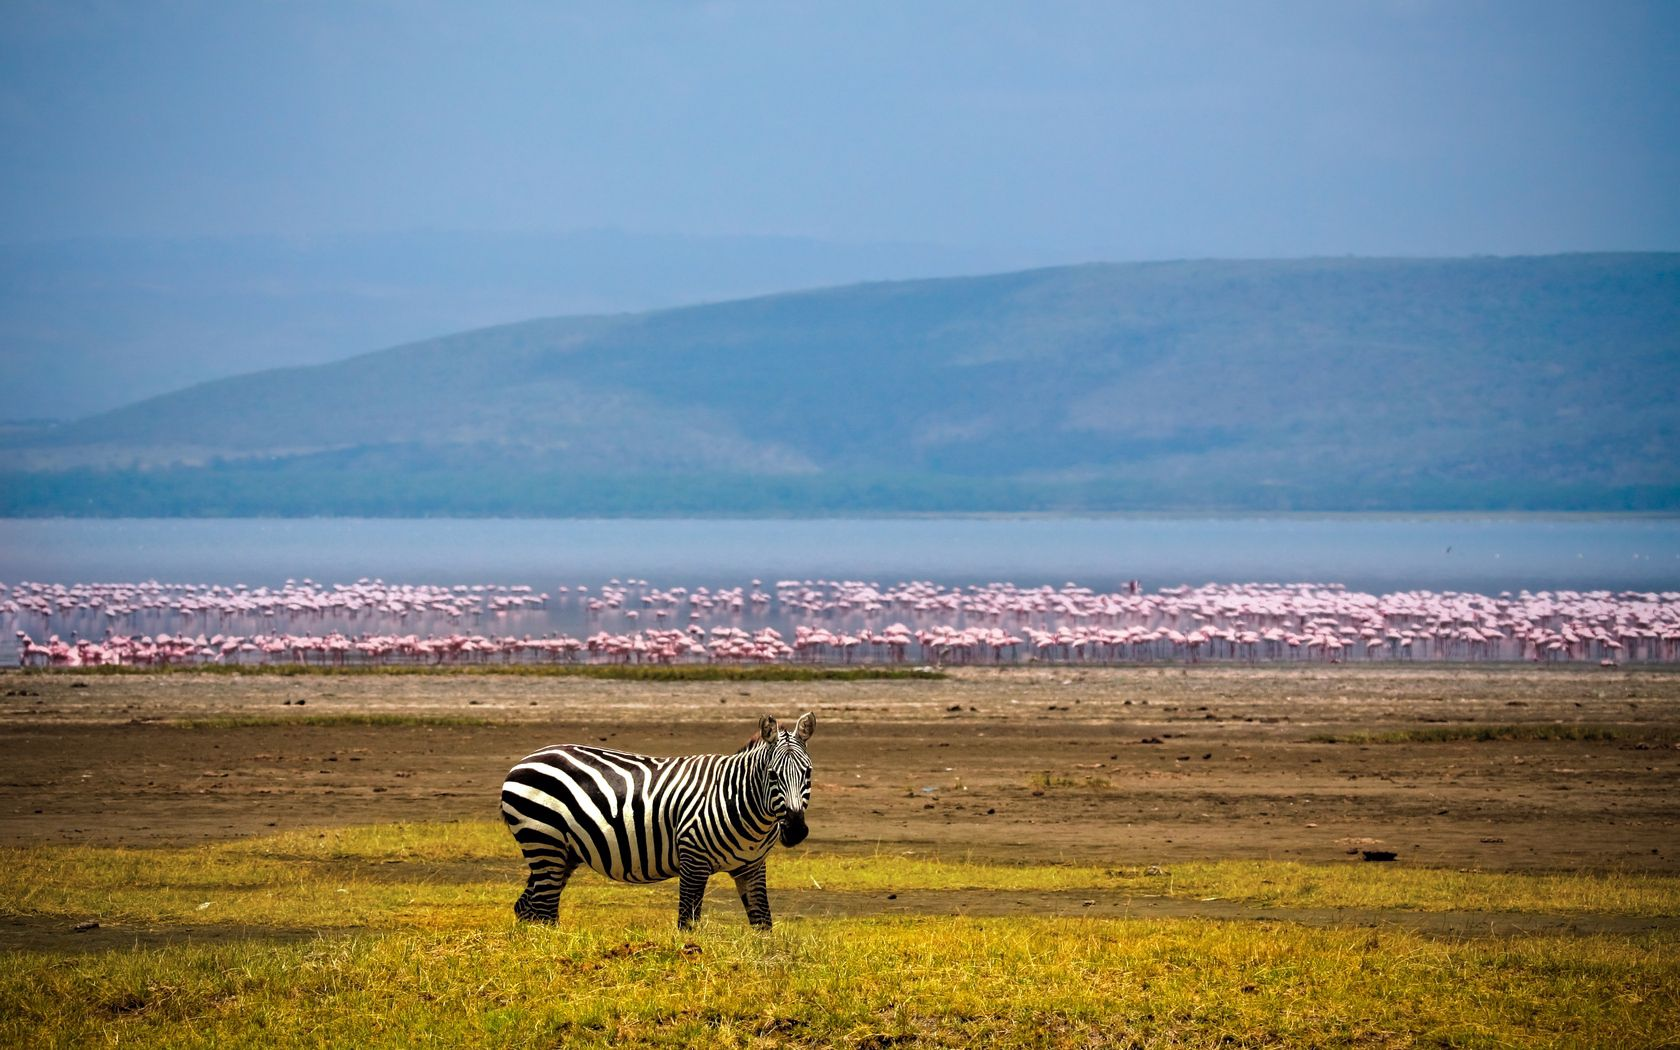 92804 download wallpaper Animals, Zebra, Africa, Background, Lake, Flamingo screensavers and pictures for free